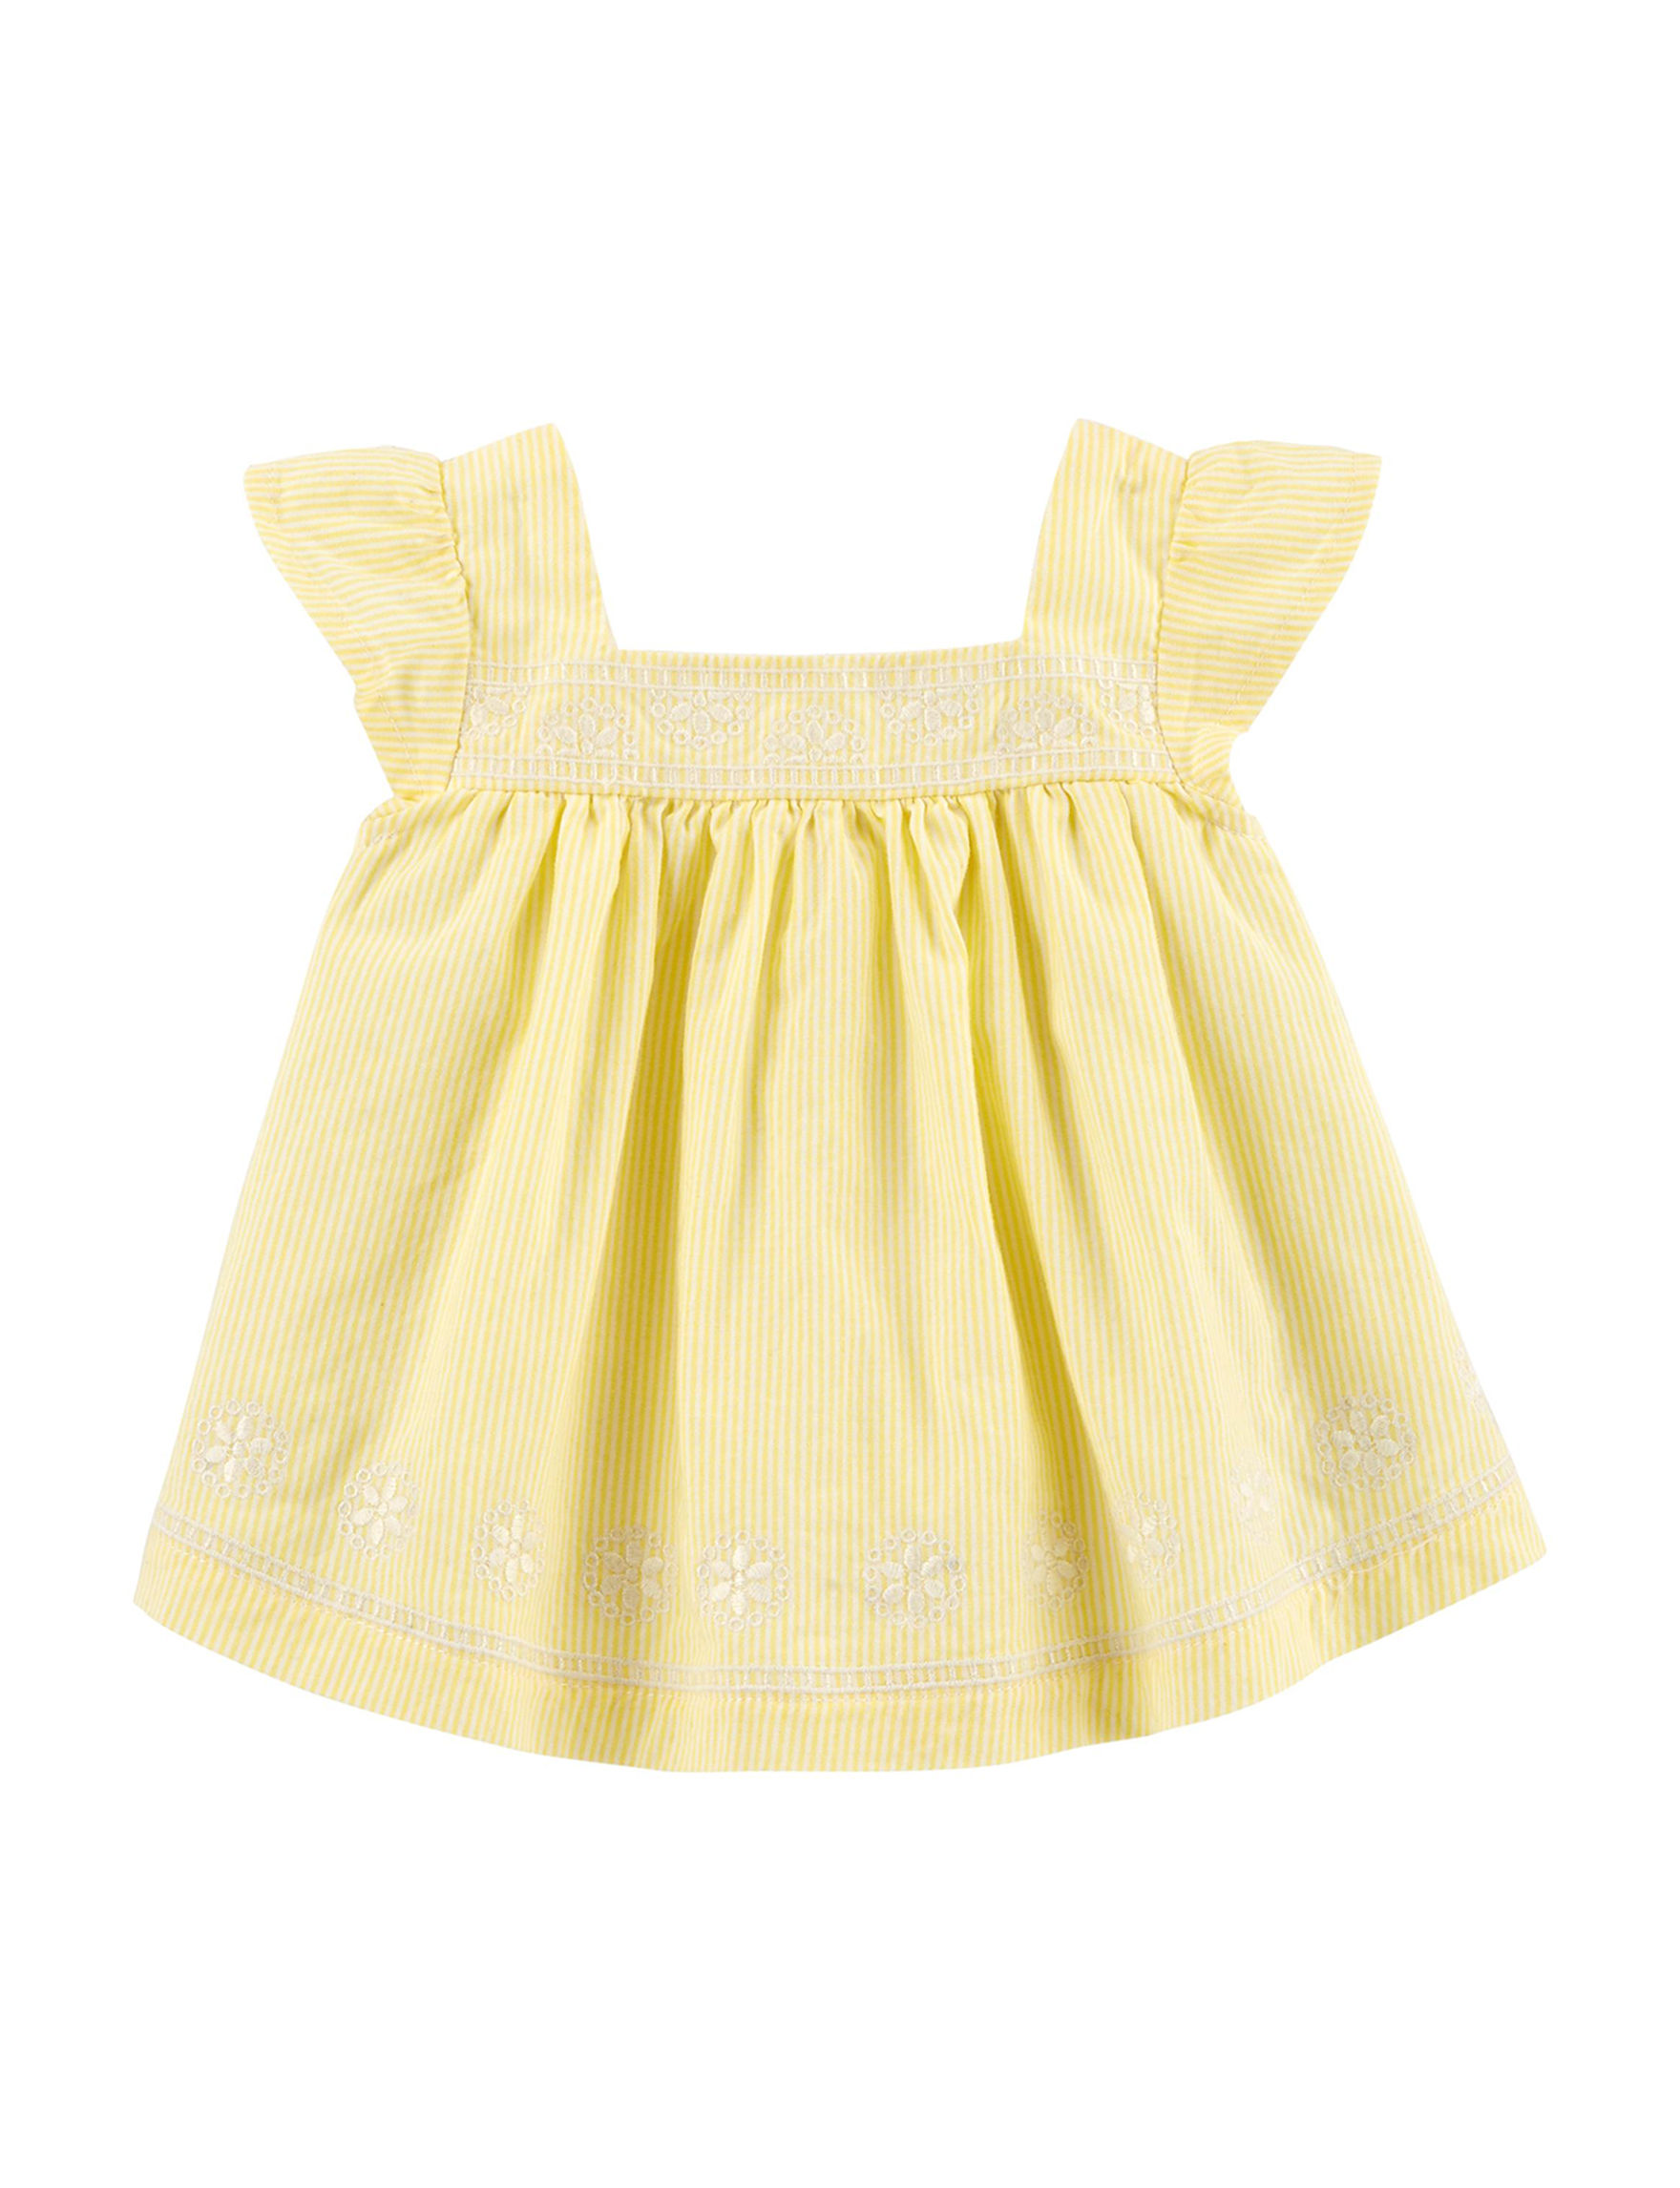 Oshkosh B'Gosh Yellow Stripe